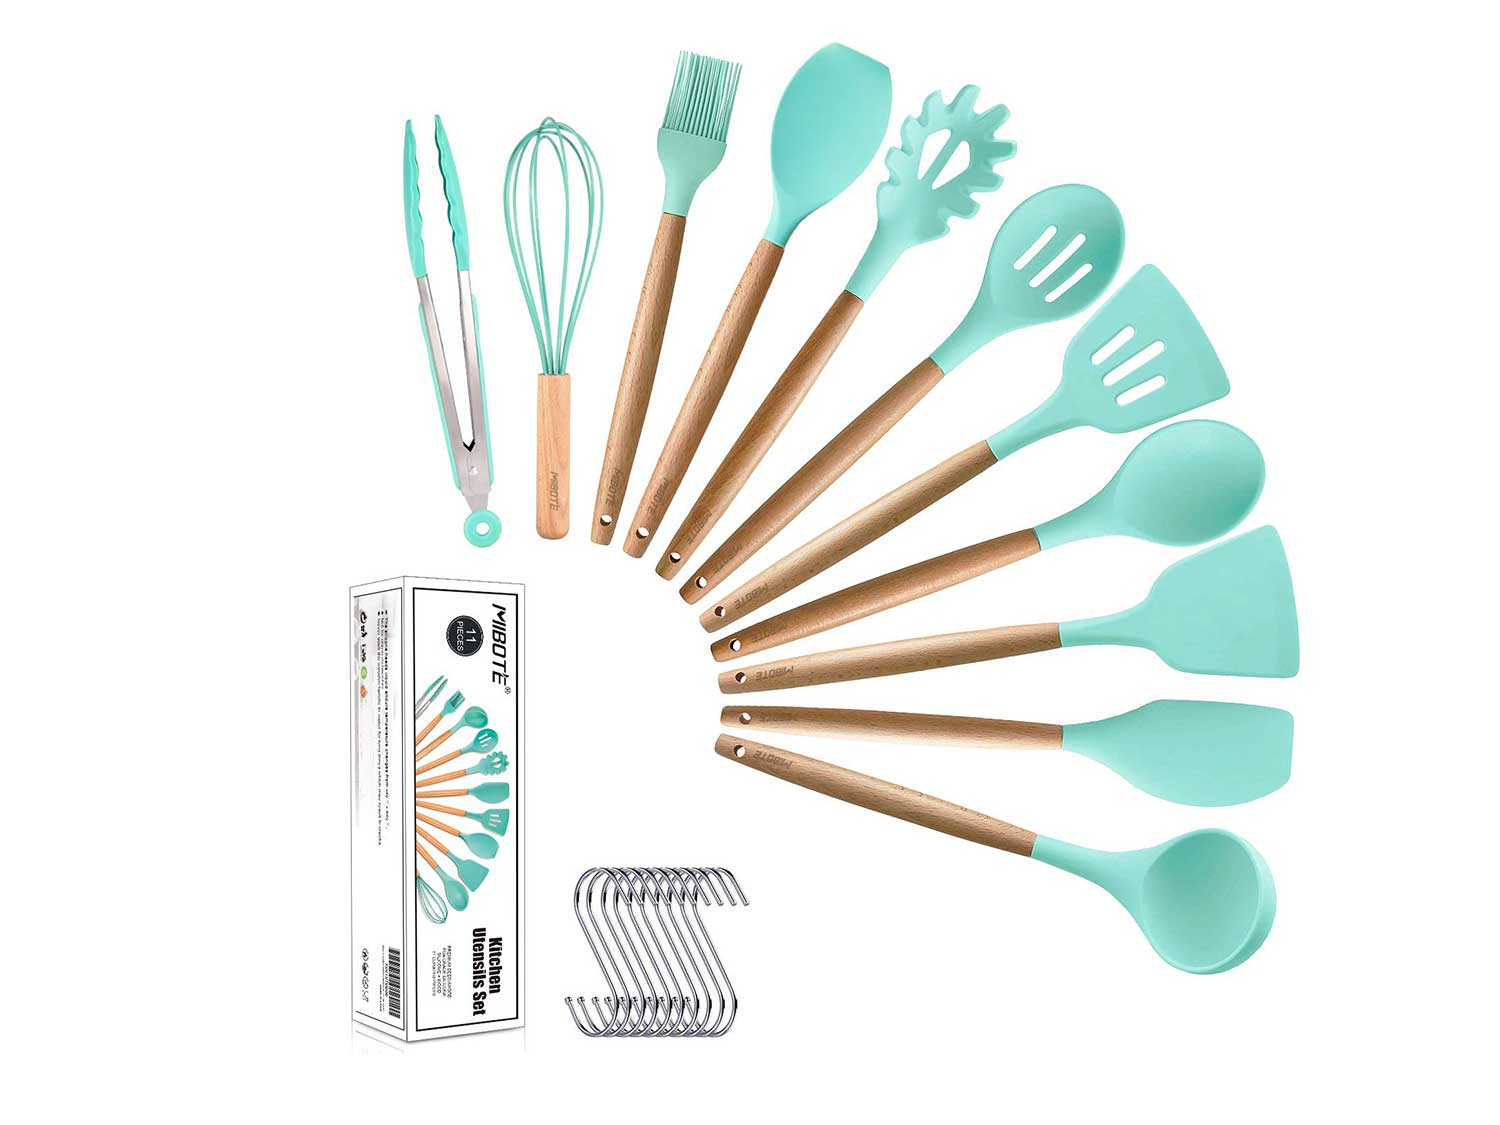 Silicone cooking utensils.